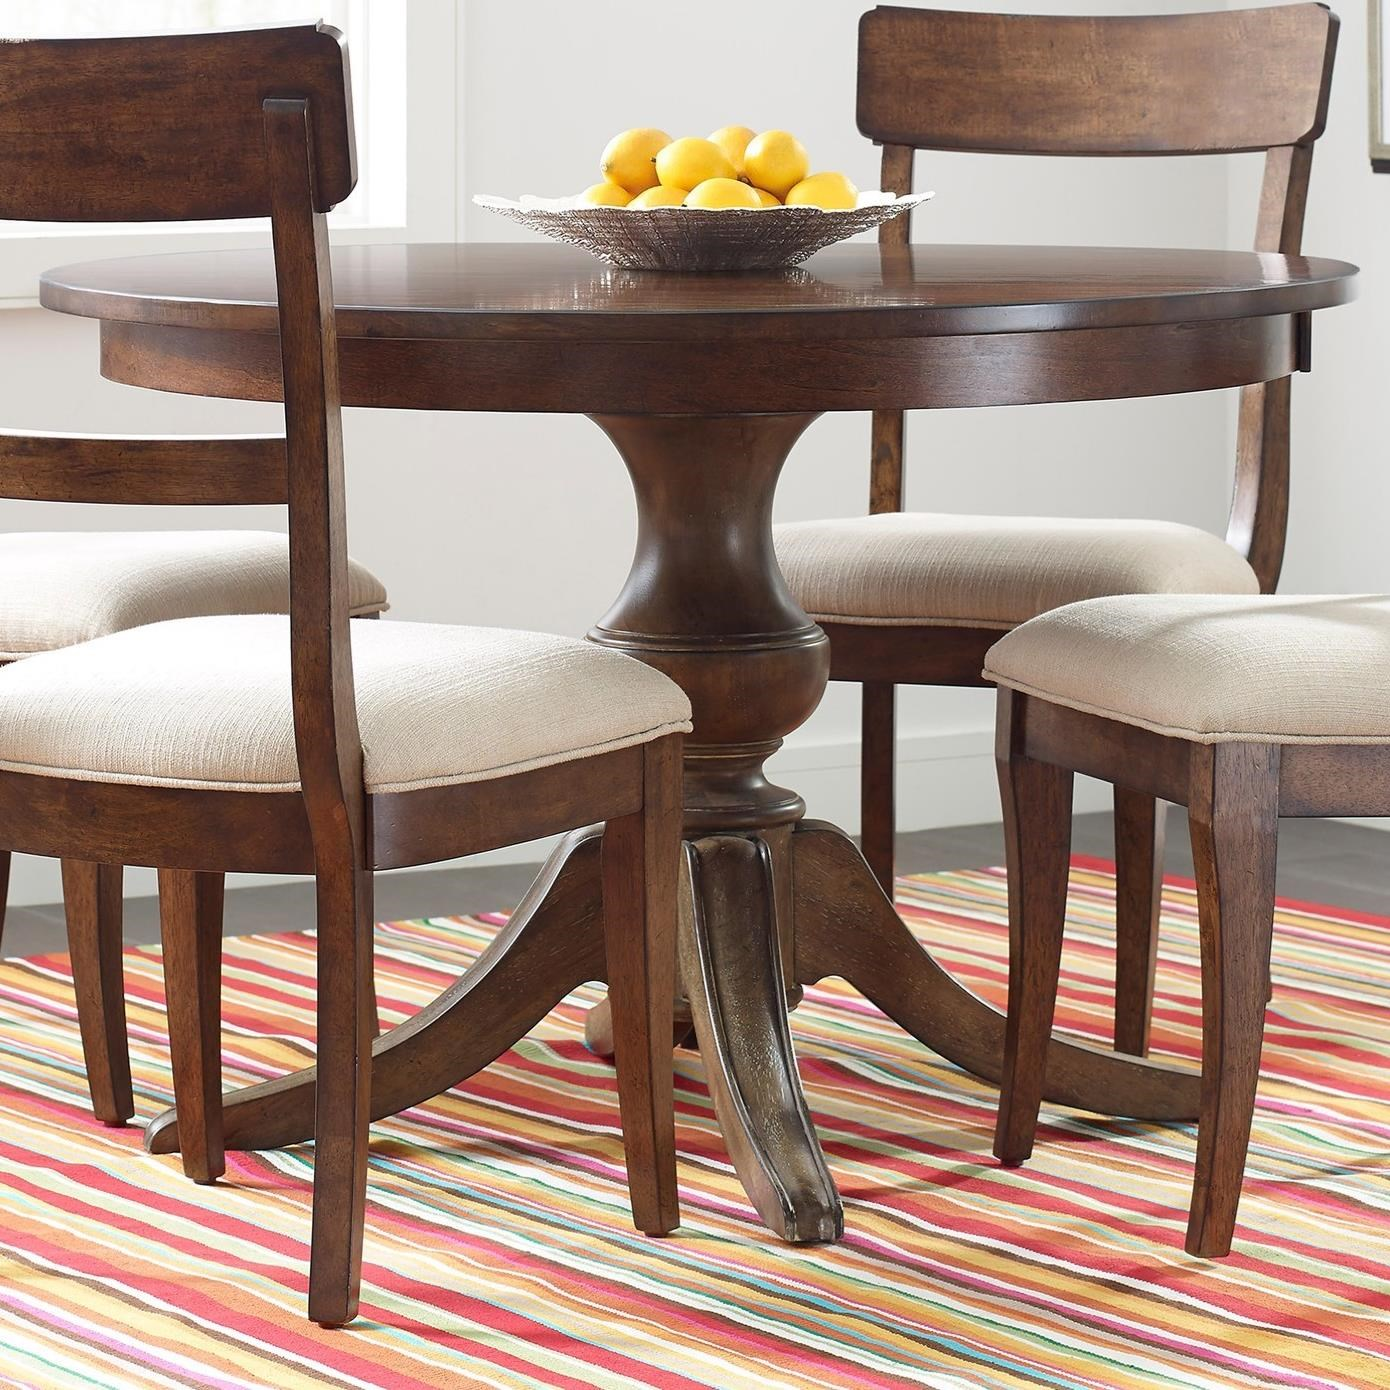 """The Nook 44"""" Round Dining Table w/ Wood Base by Kincaid Furniture at Johnny Janosik"""